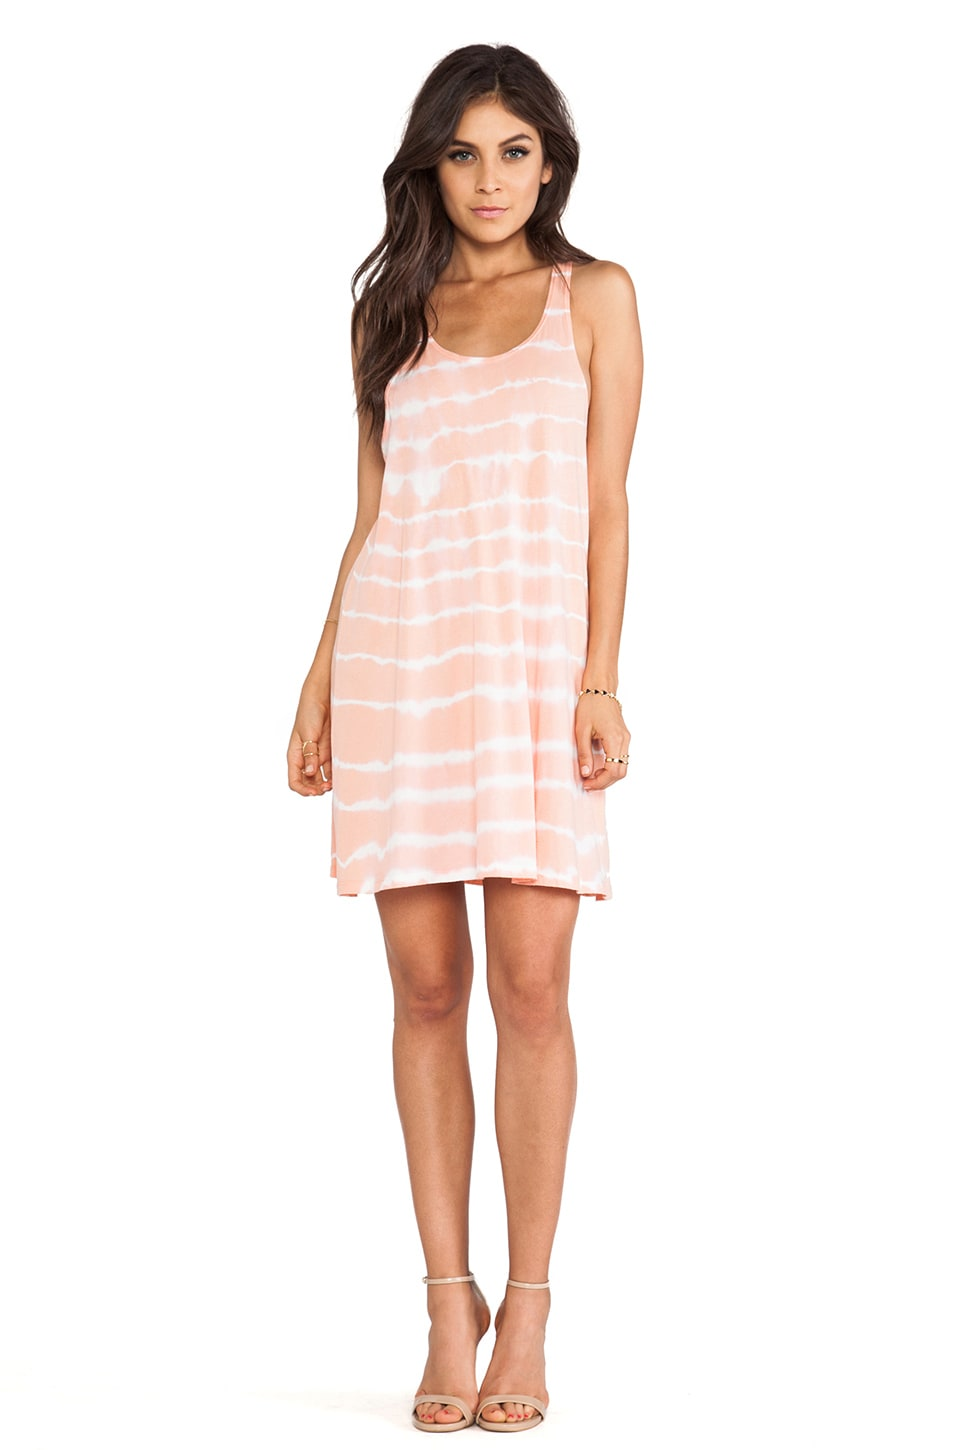 Bobi Light Weight Jersey Tie Dye Mini Dress in Coral